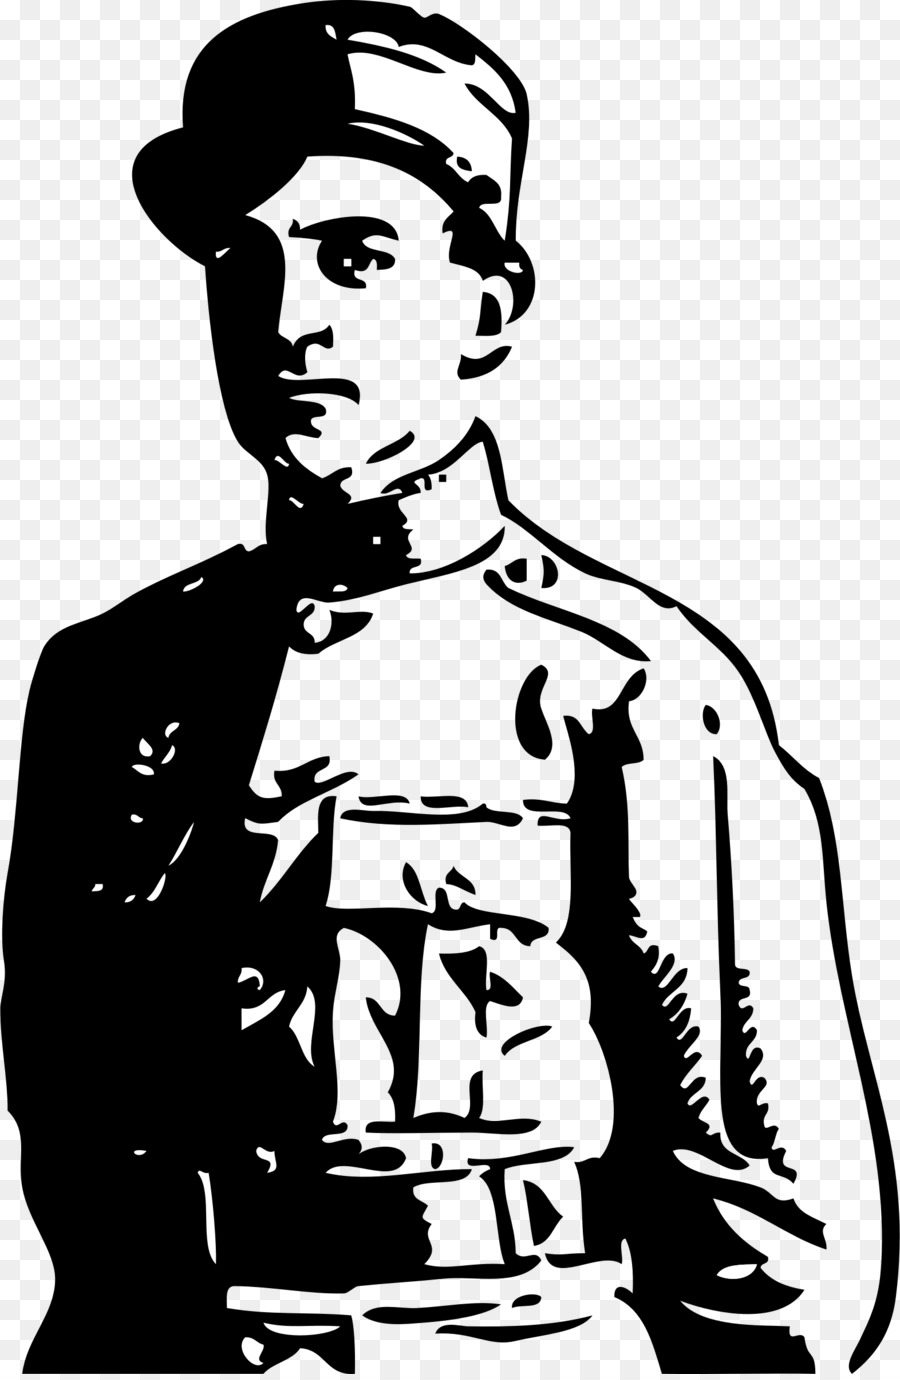 Ww1 clipart black and white clip art download Soldier Silhouette clipart - Soldier, War, Army, transparent ... clip art download